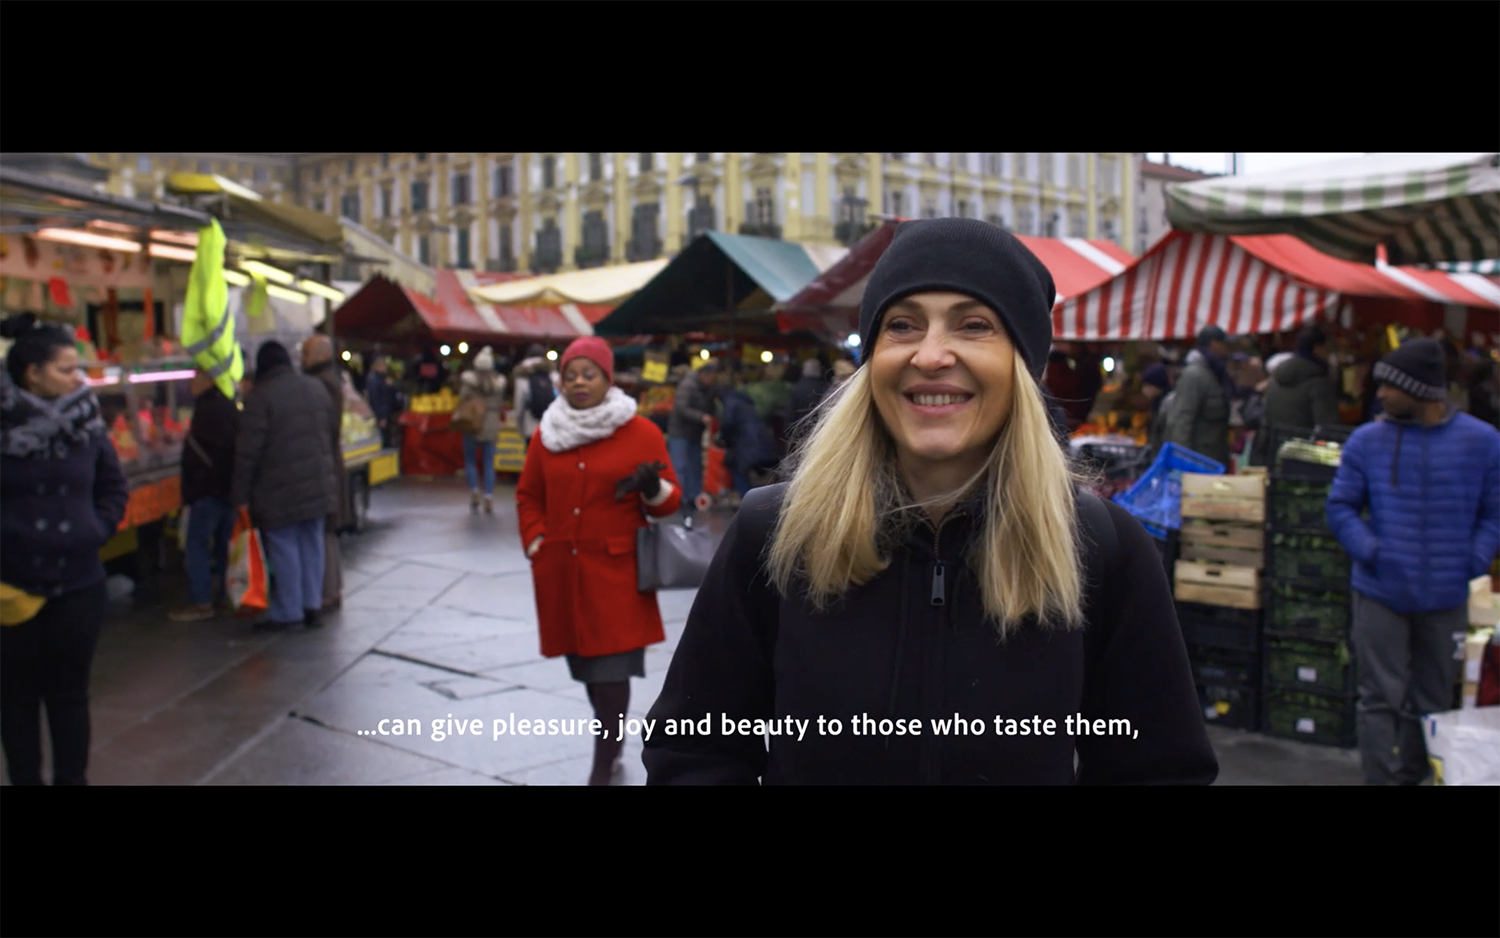 Lady in black hat being interviewed at market